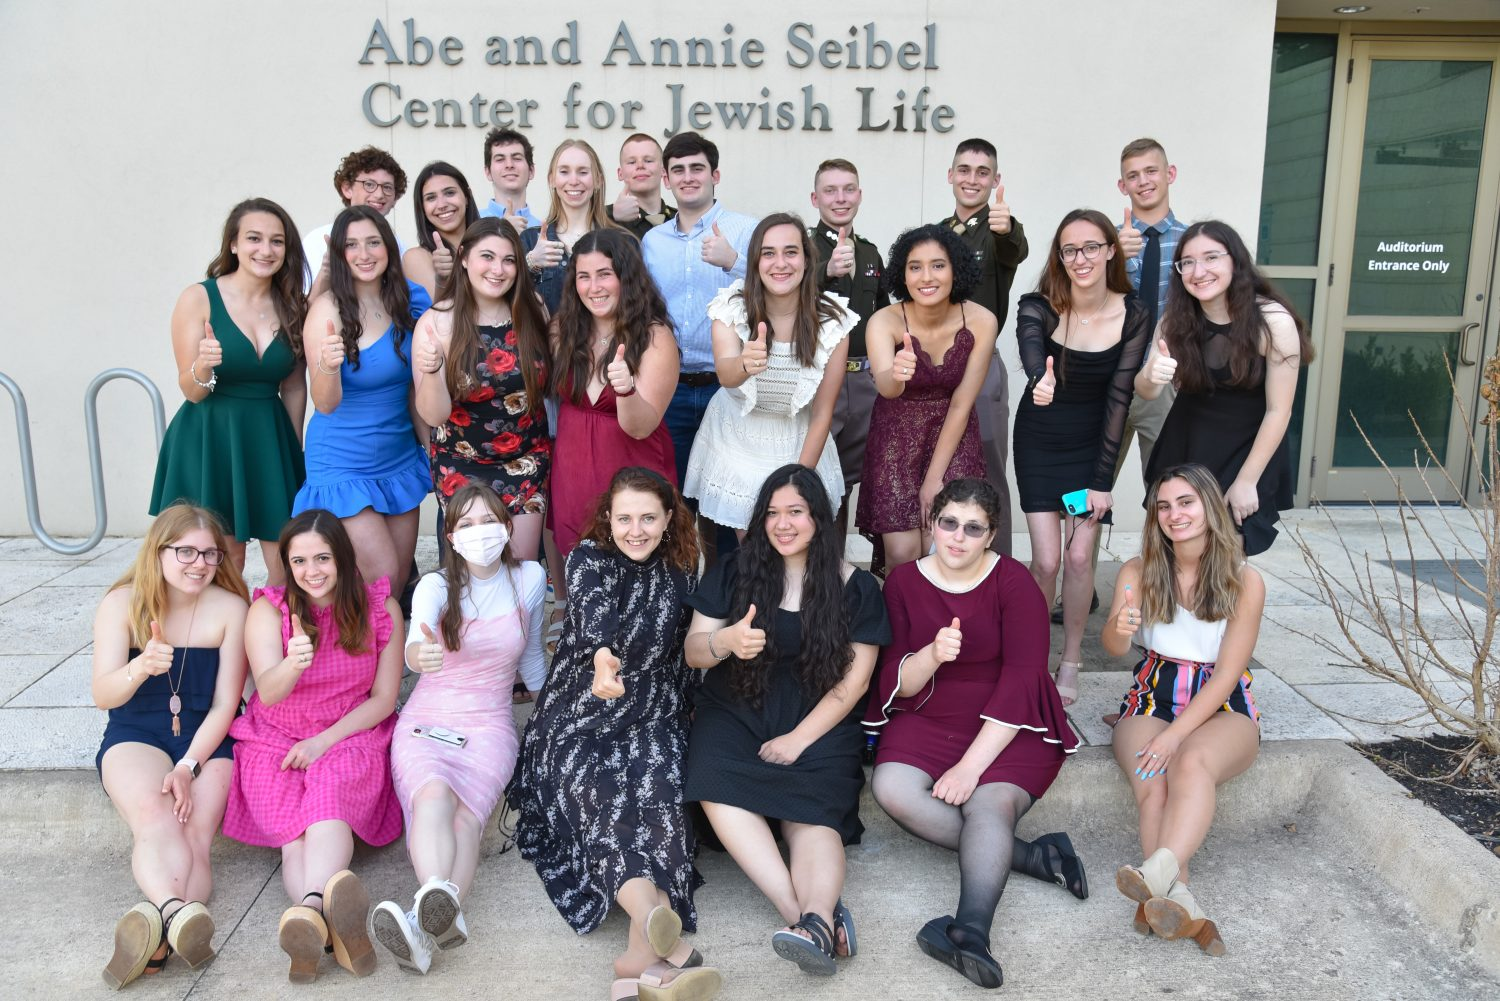 A group picture of students dressed up doing the gig em symbol